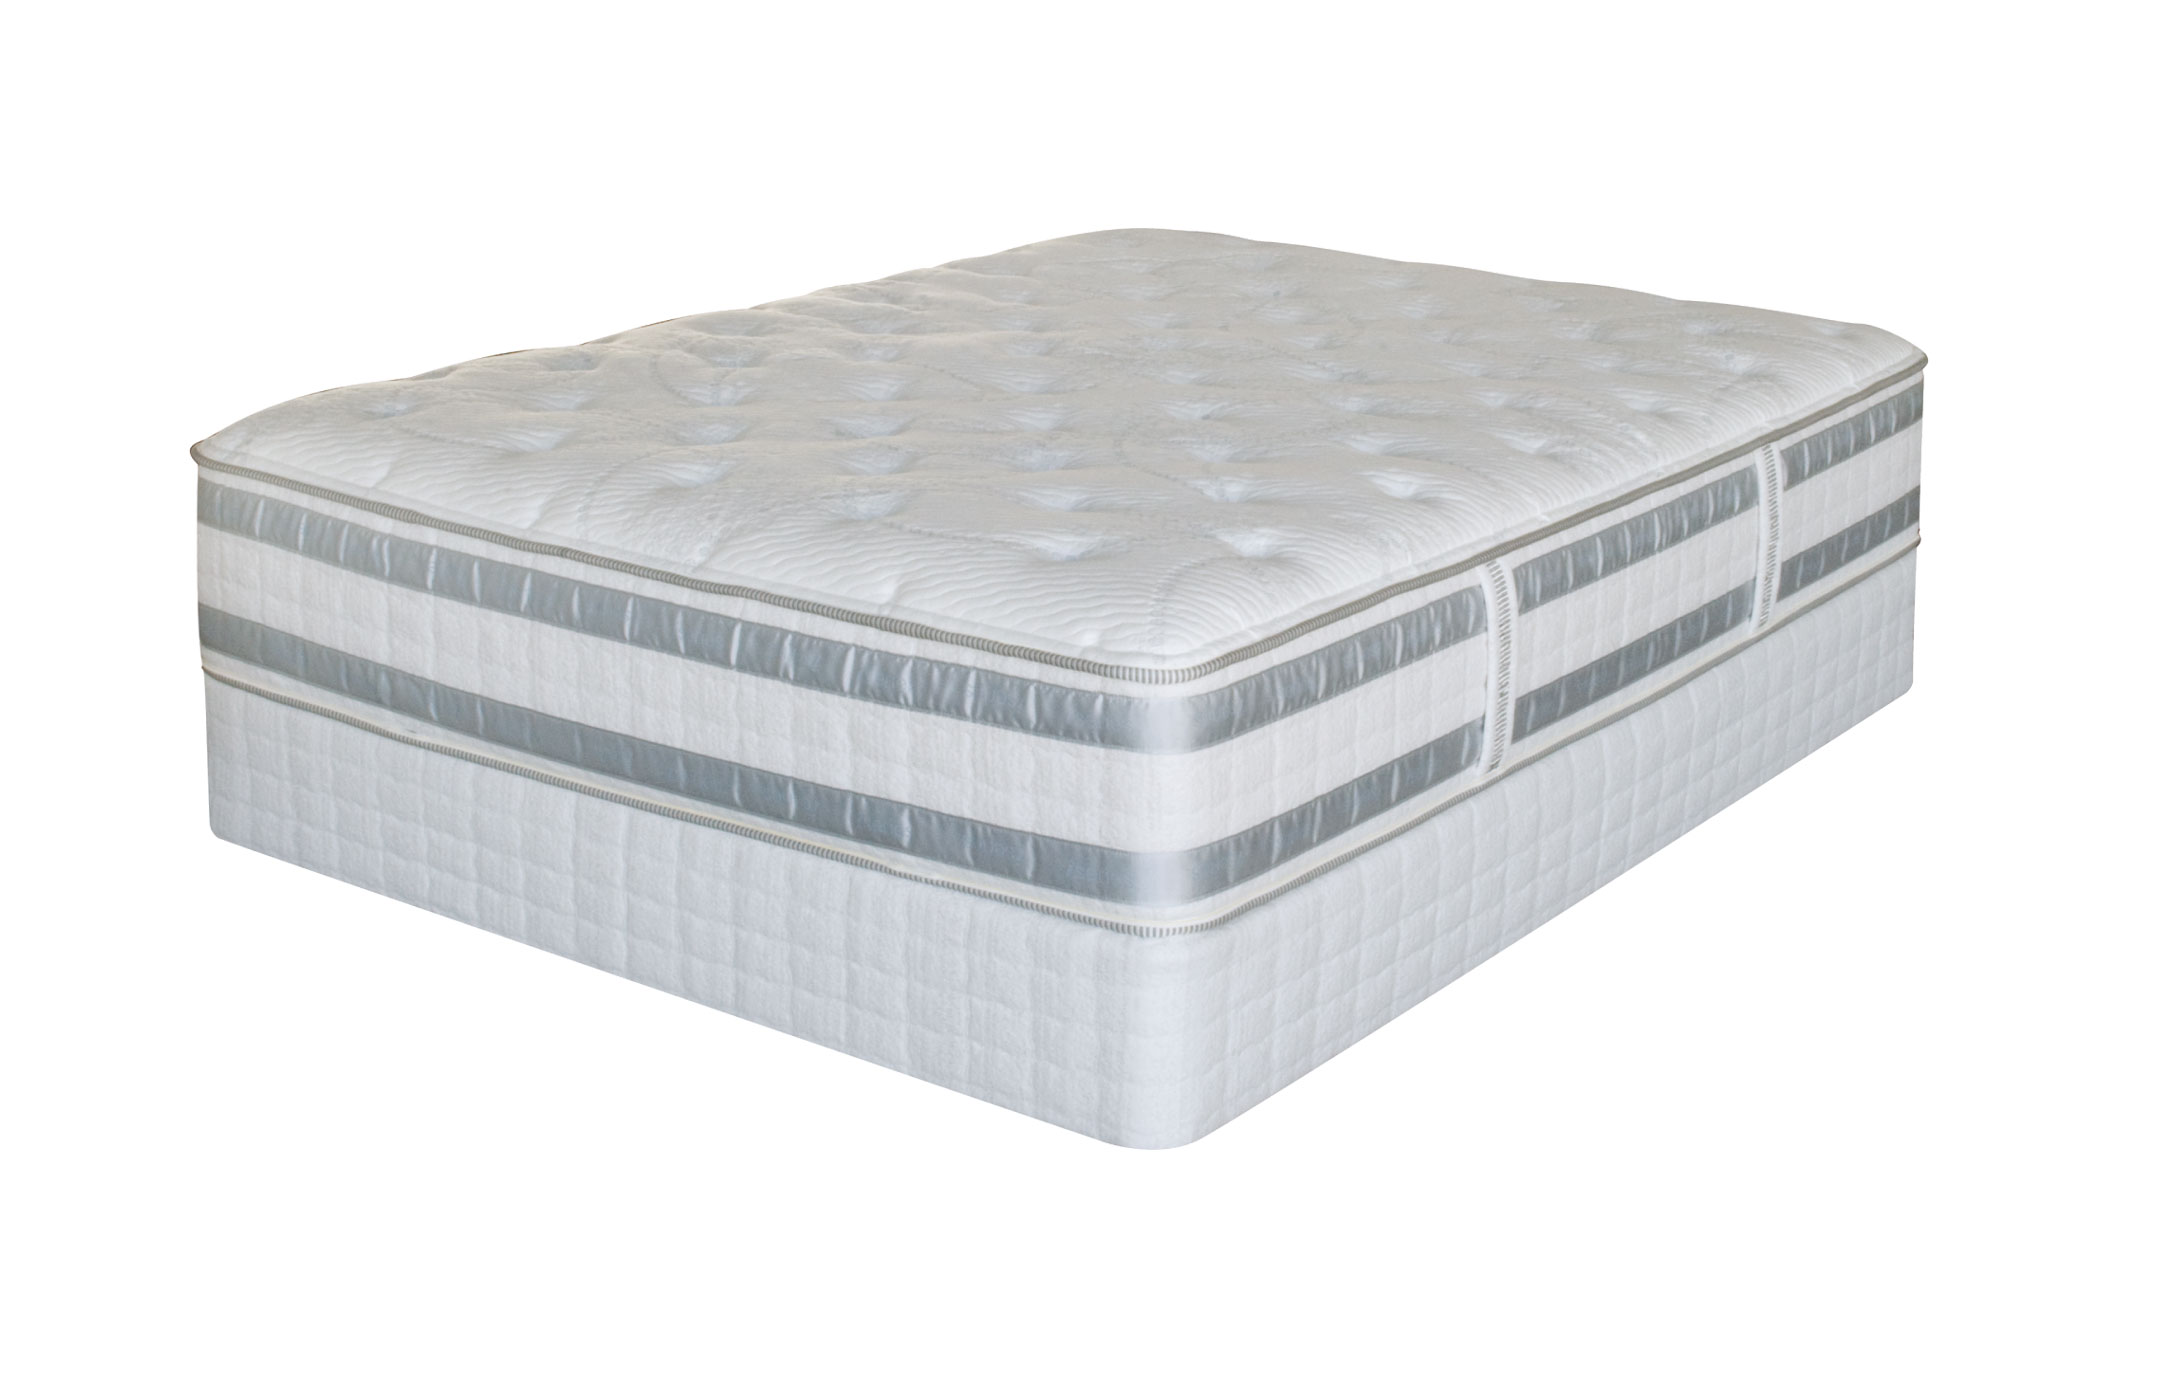 Restonic Mattress Models Home » More Energy And Vitality Every Day With Perfect Day A Premium ...